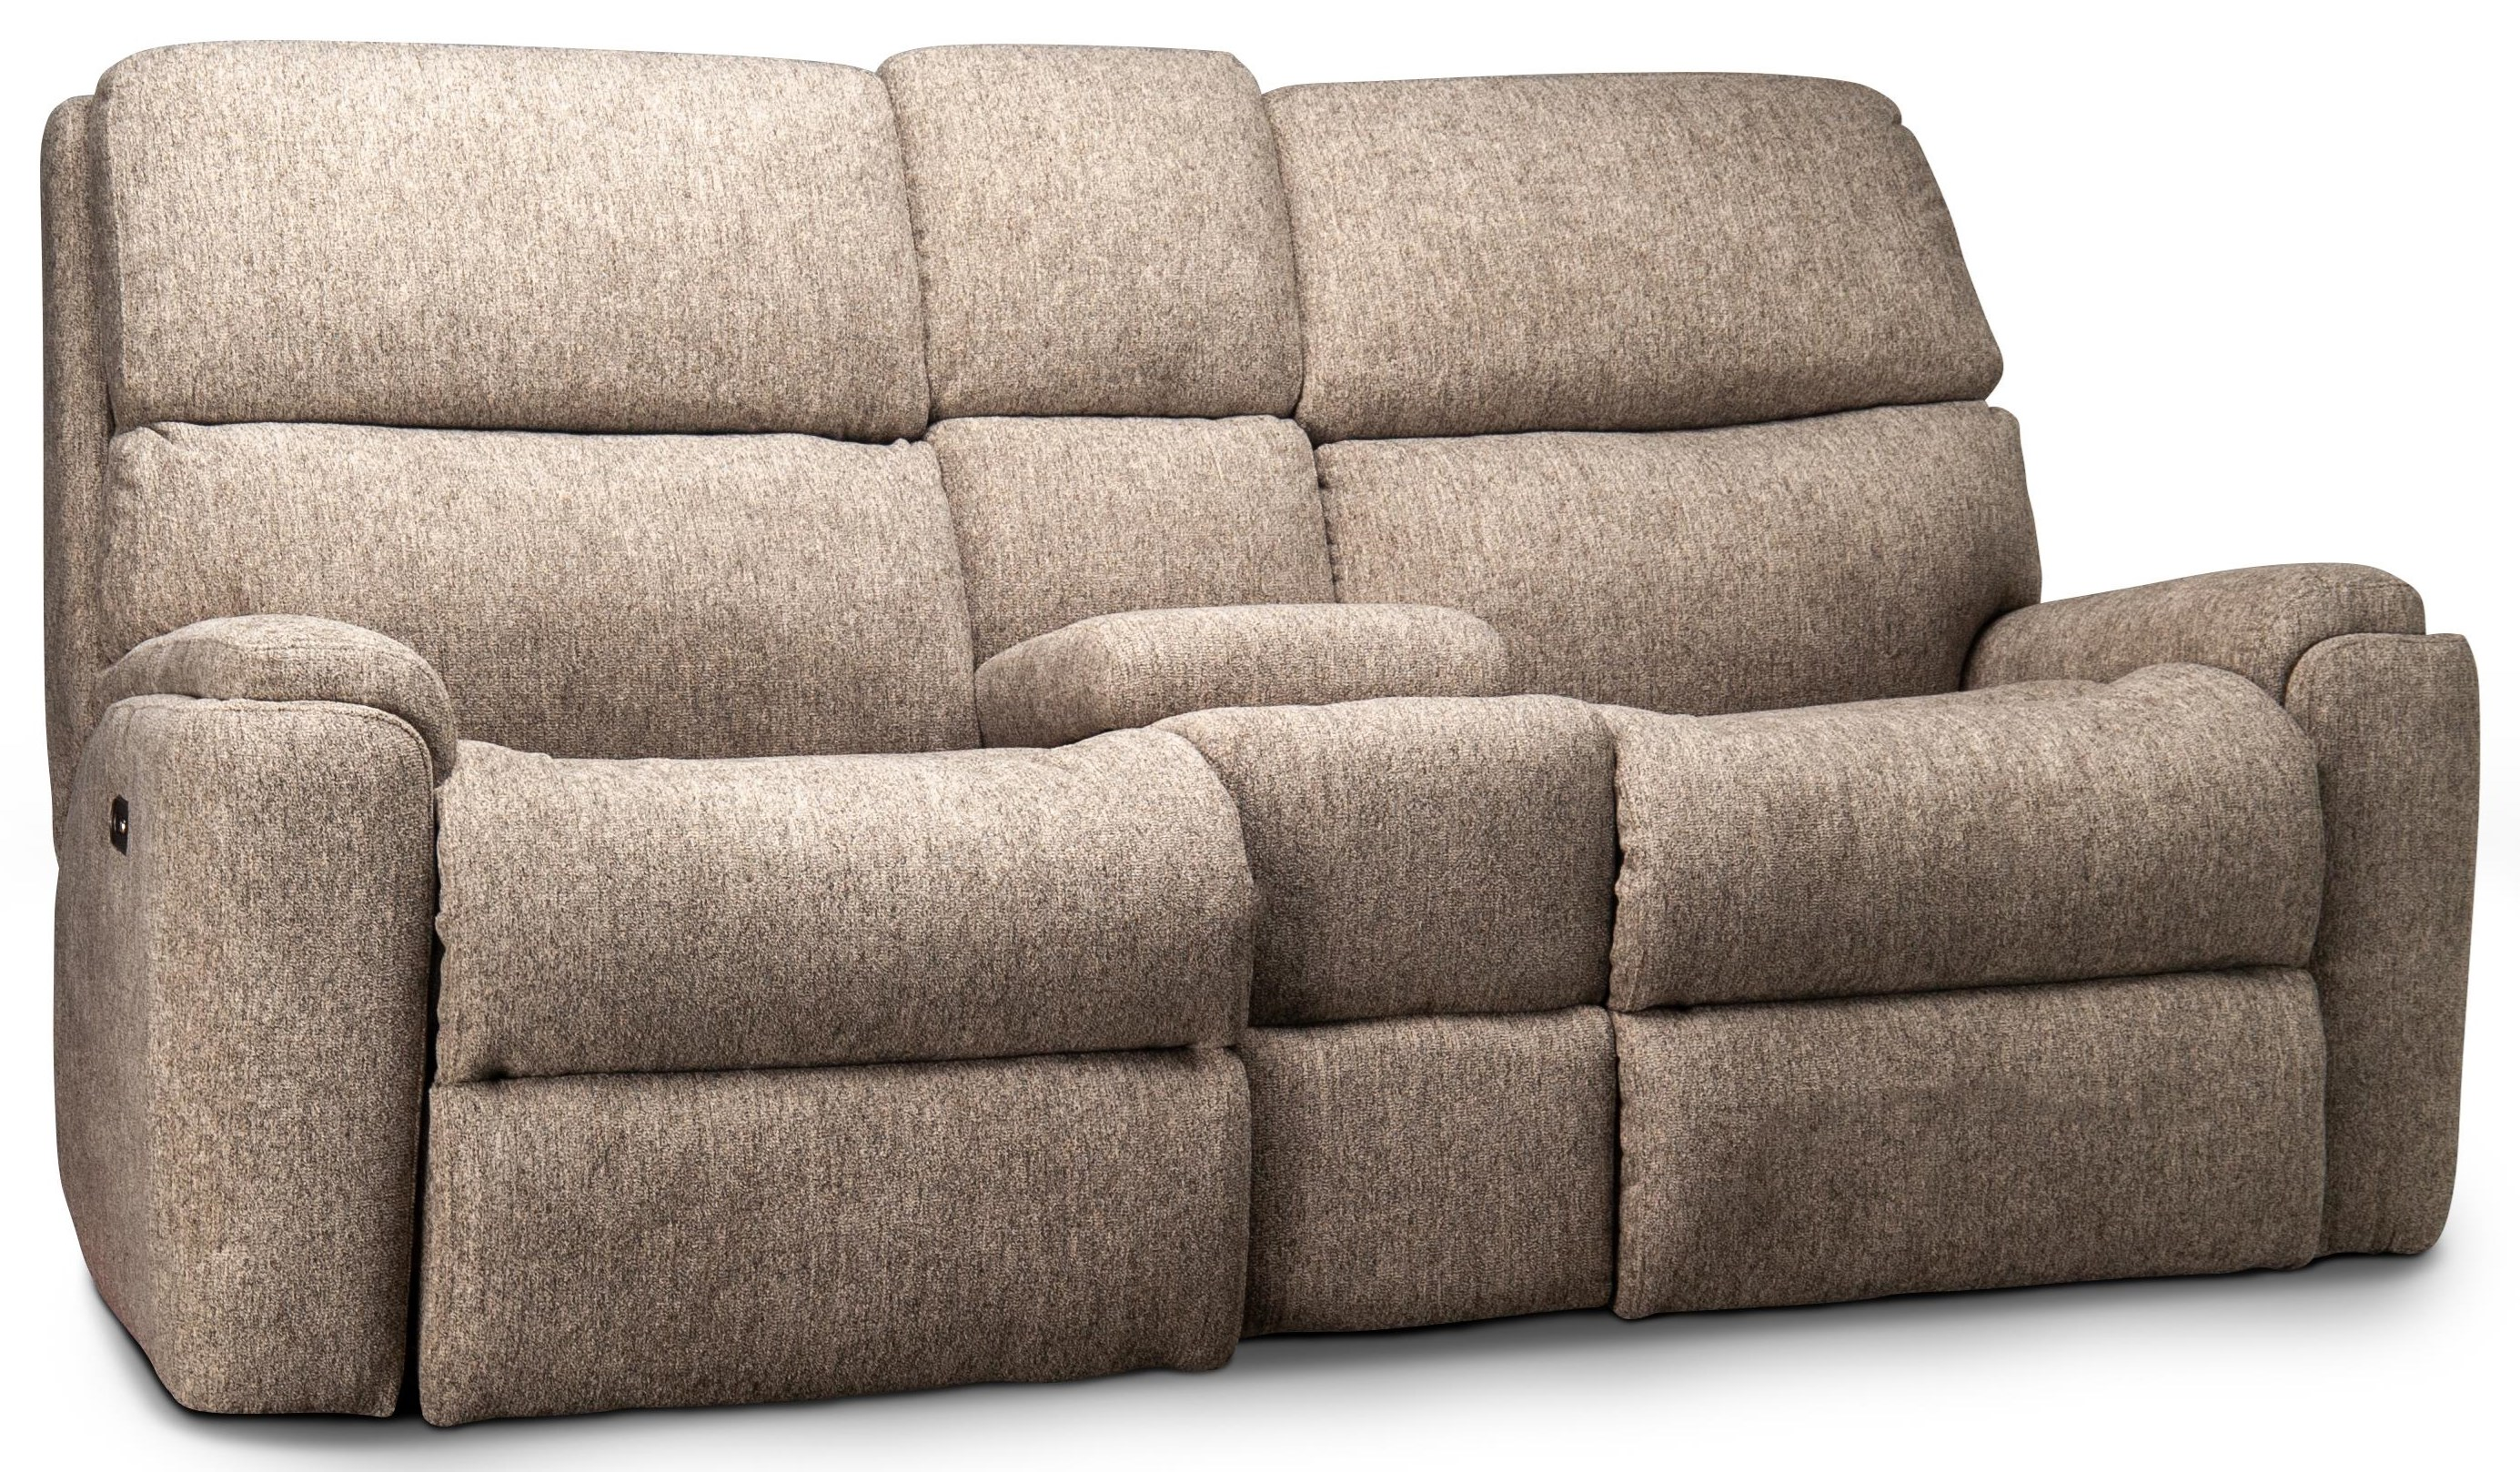 Regina Regina Power Loveseat with Headrest by Flexsteel Wynwood Collection at Morris Home